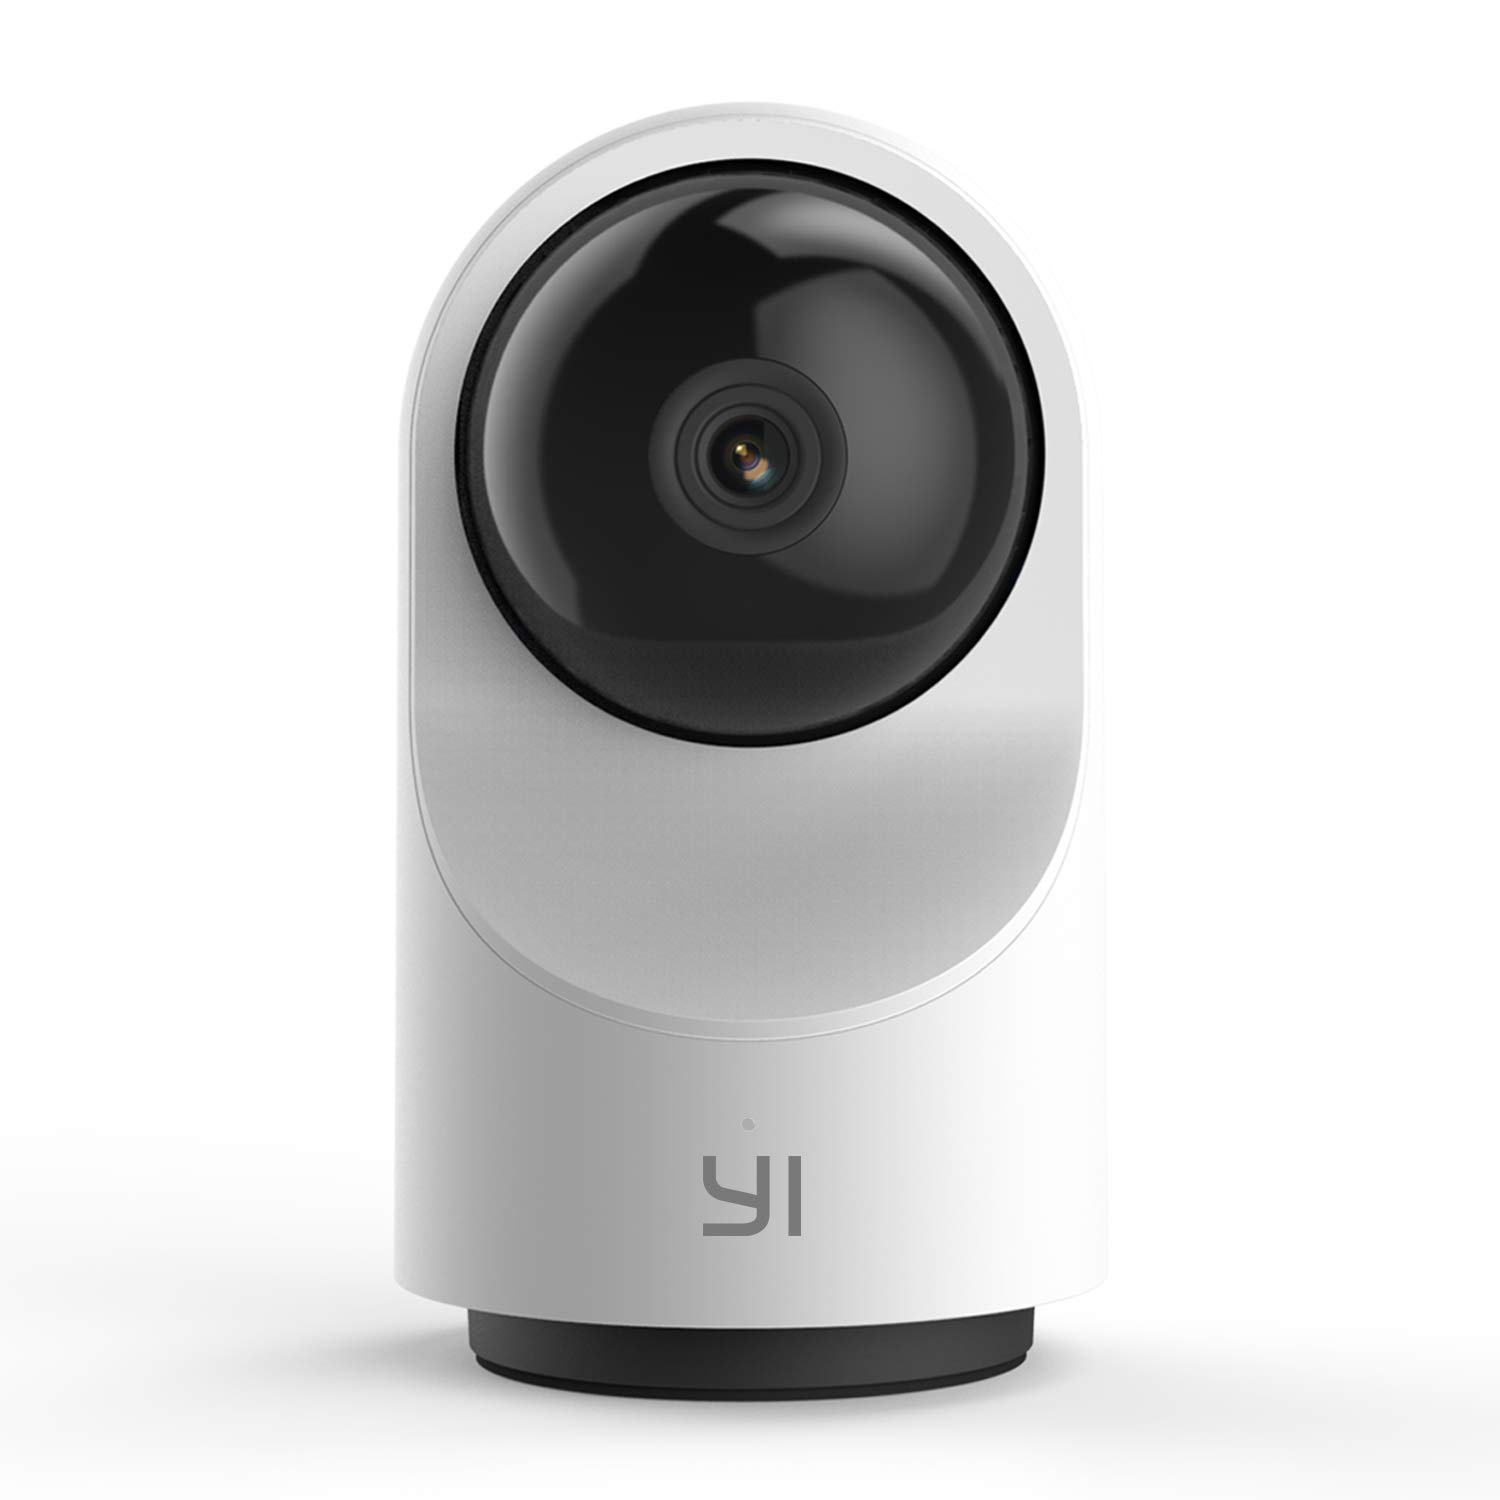 YI Smart Dome Camera X, AI-Powered 1080p WiFi IP Home Security System with 24/7 Emergency Response, Human Detection, Sound Analytics, Image Retrieval, Time Lapse, Auto Cruise - Cloud Service Available